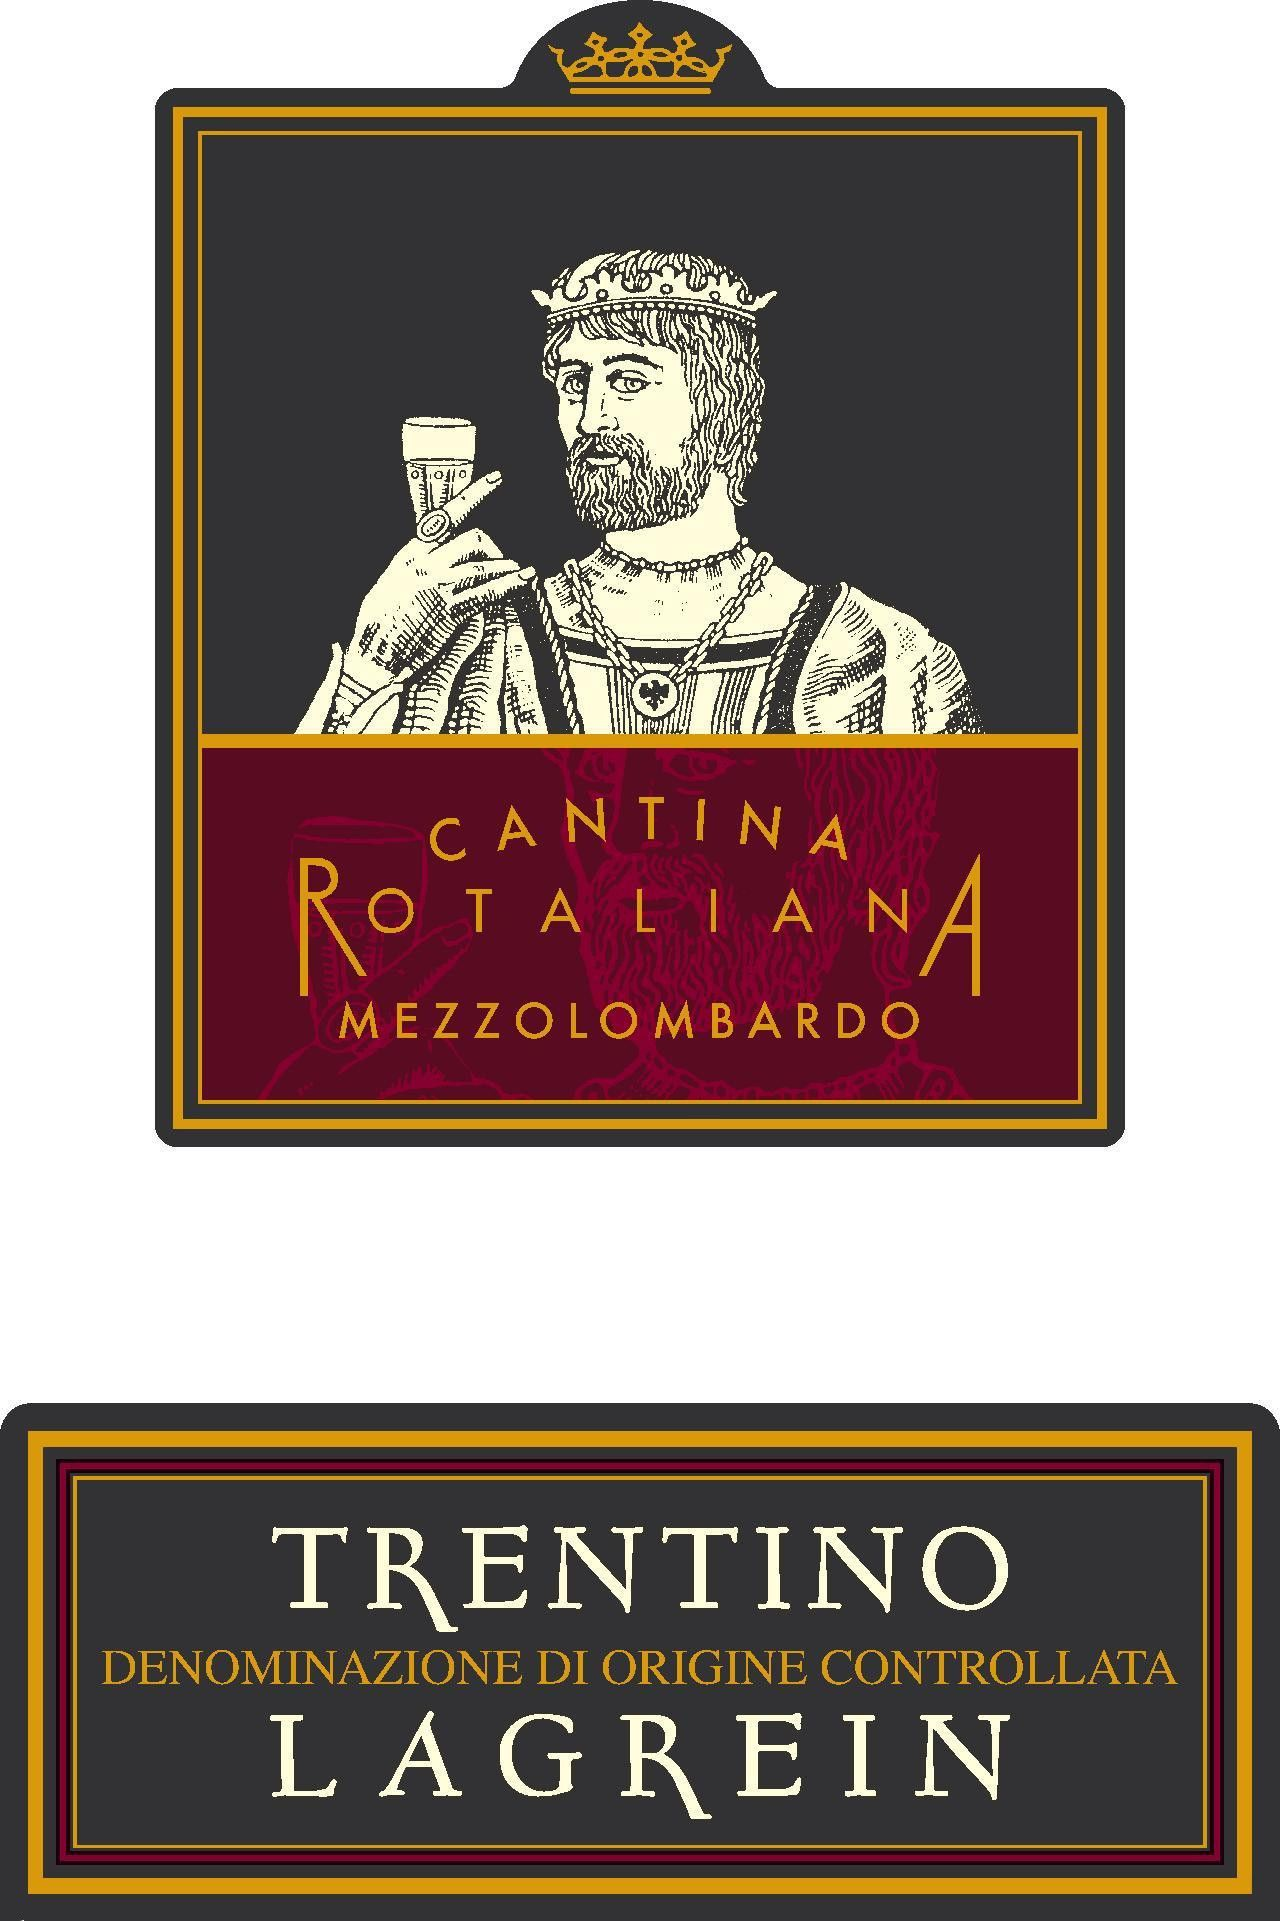 Cantina Rotaliana Trentino Lagrein 2013 Front Label